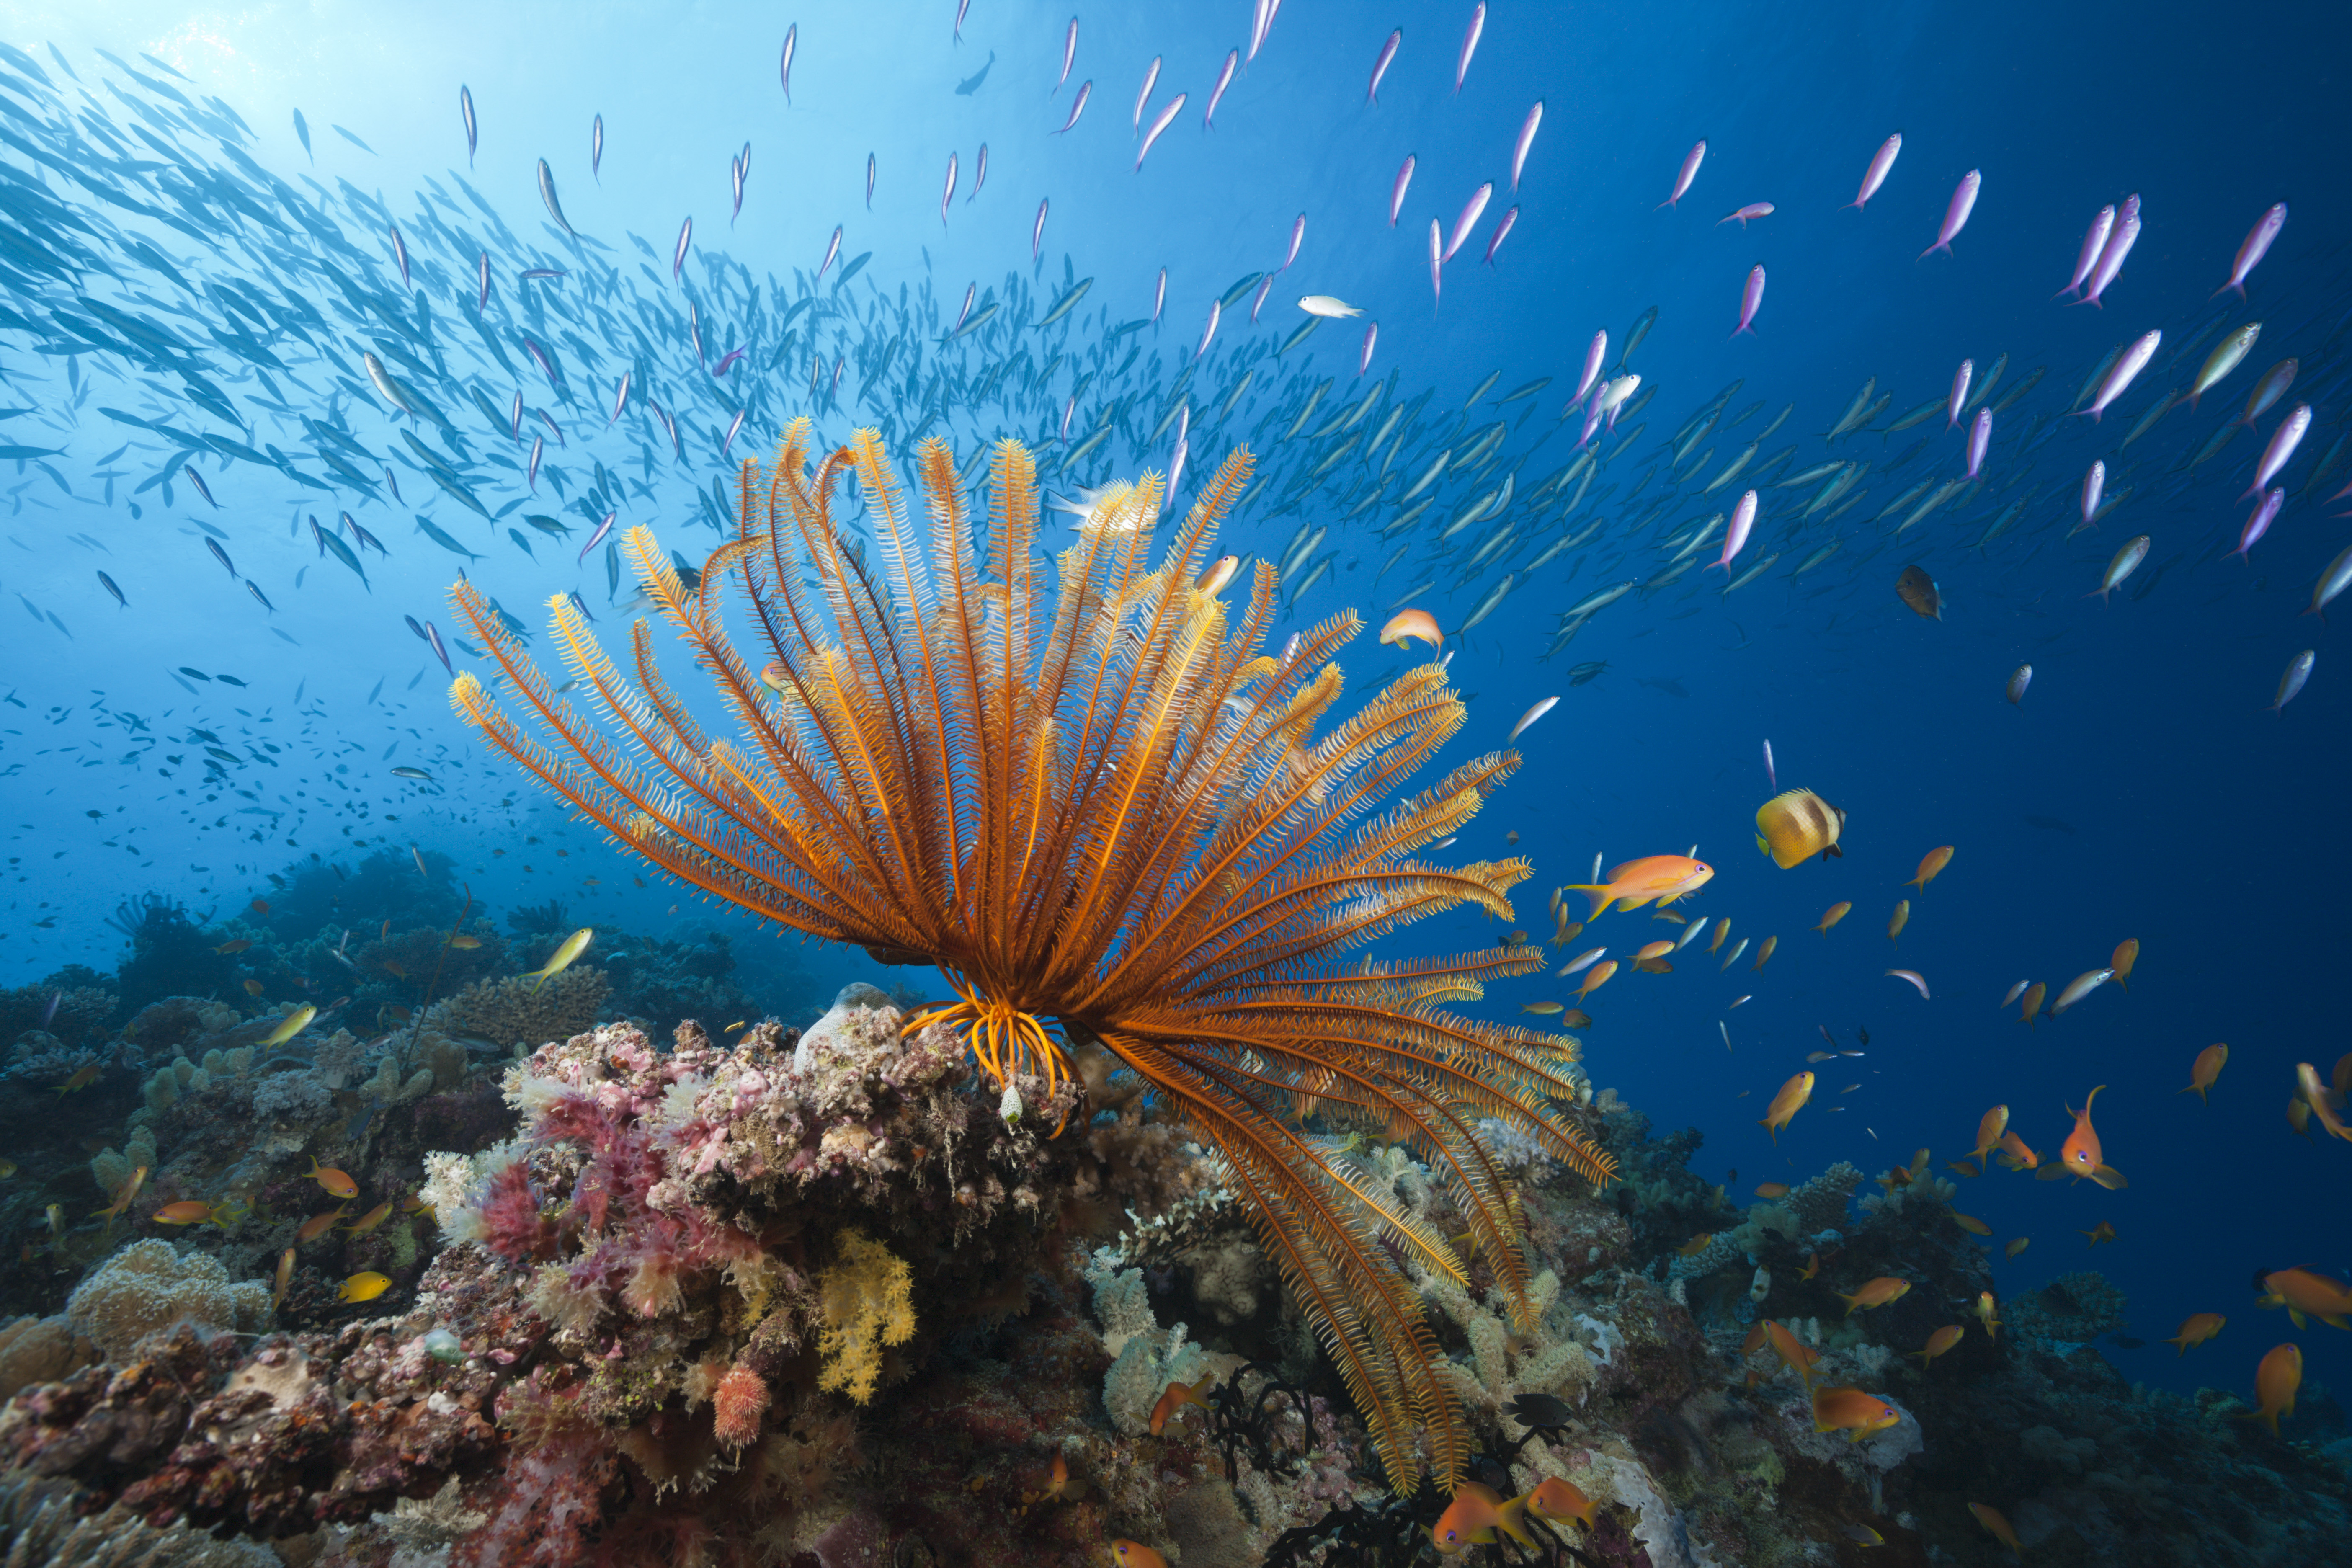 Reef Scene with Crinoid and Fishes, Great Barrier Reef, Australia April 20, 2015